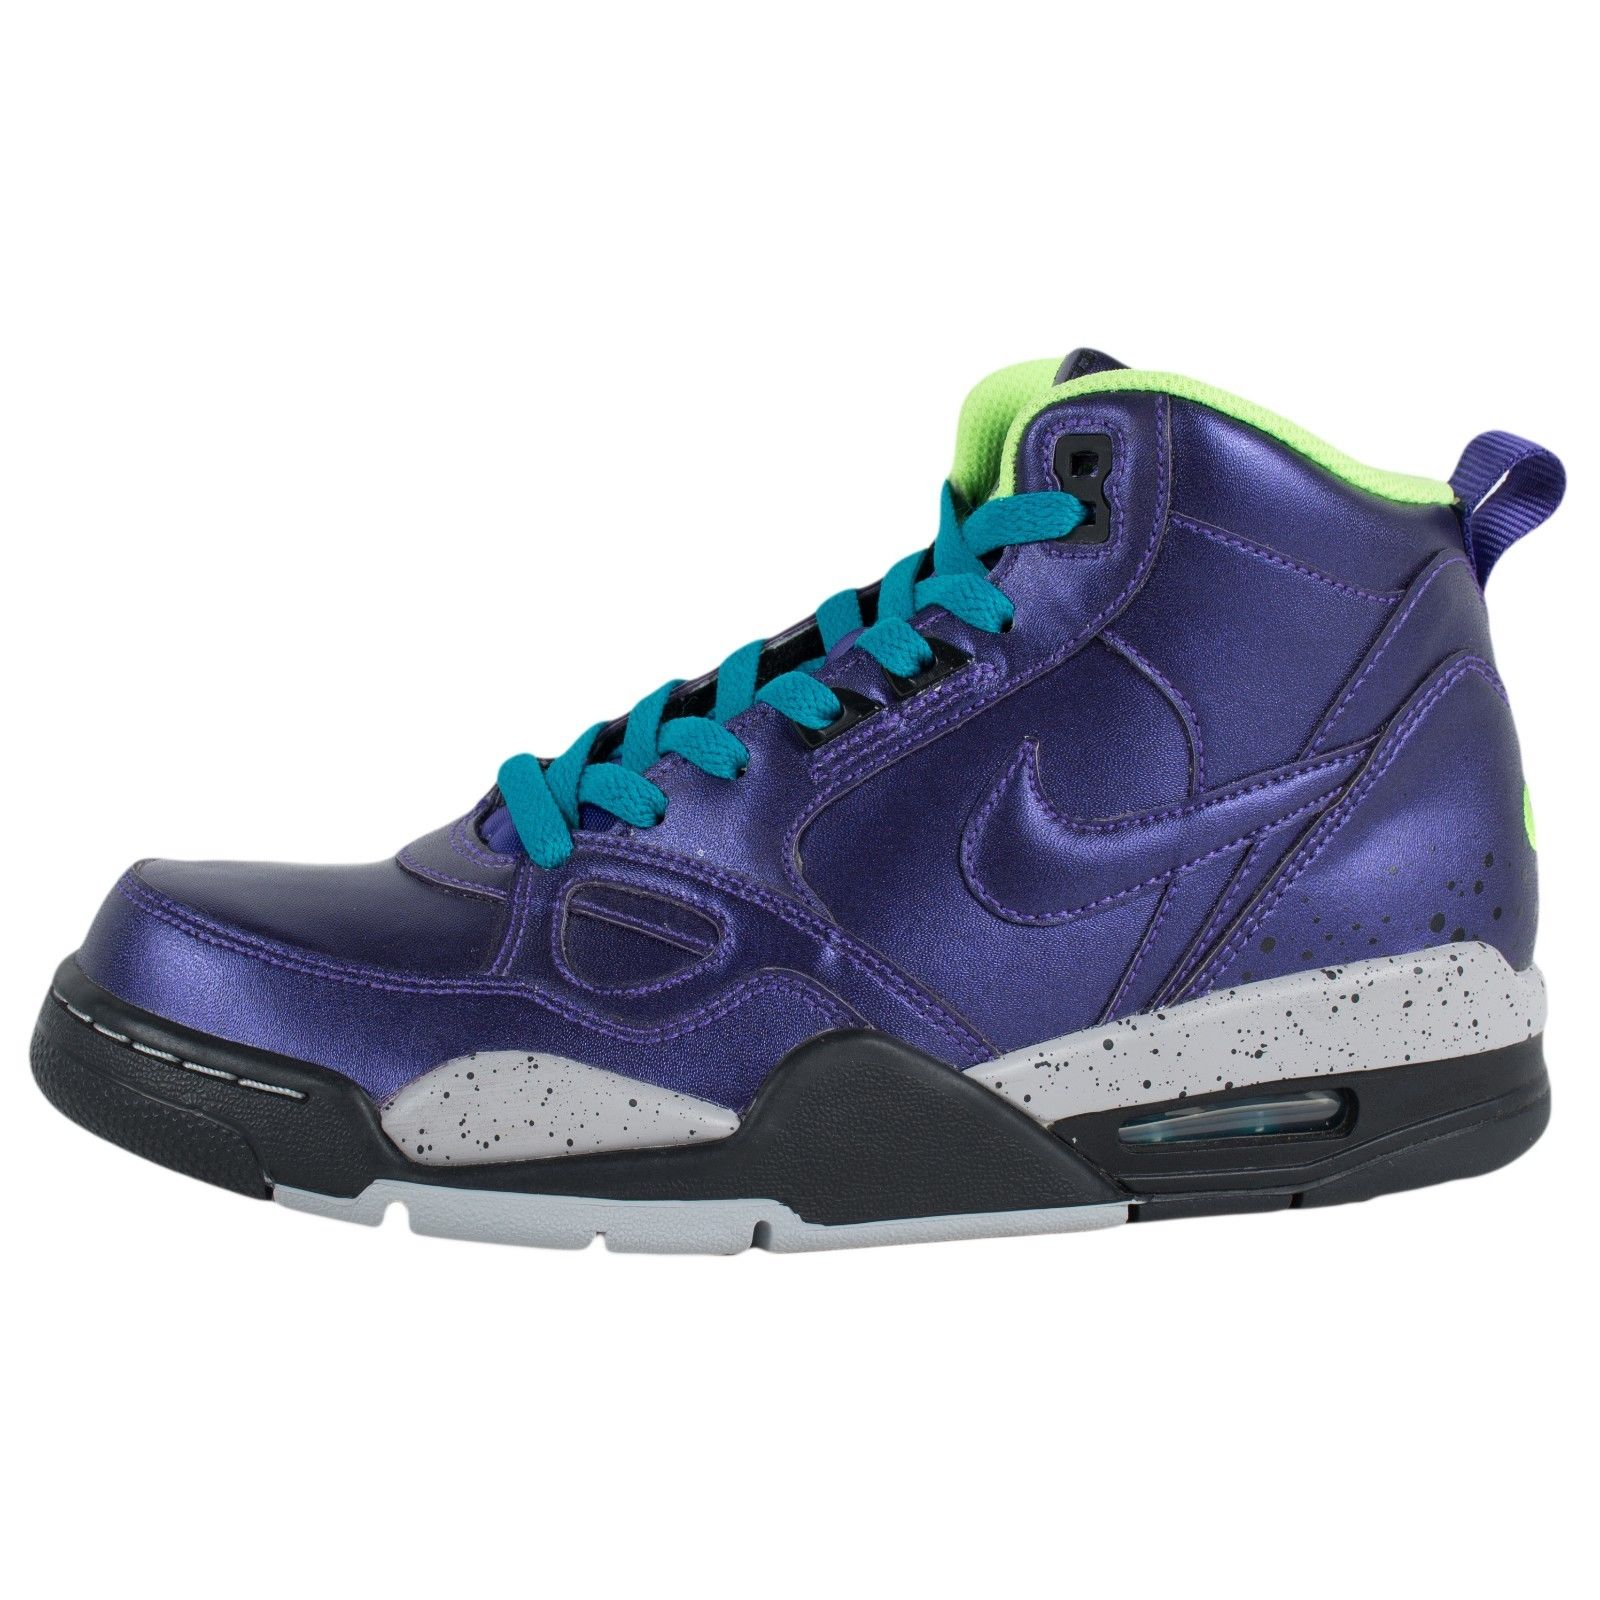 NIKE WOMENS FLIGHT 13 MID BASKETBALL SHOES ELECTRO PURPLE ...